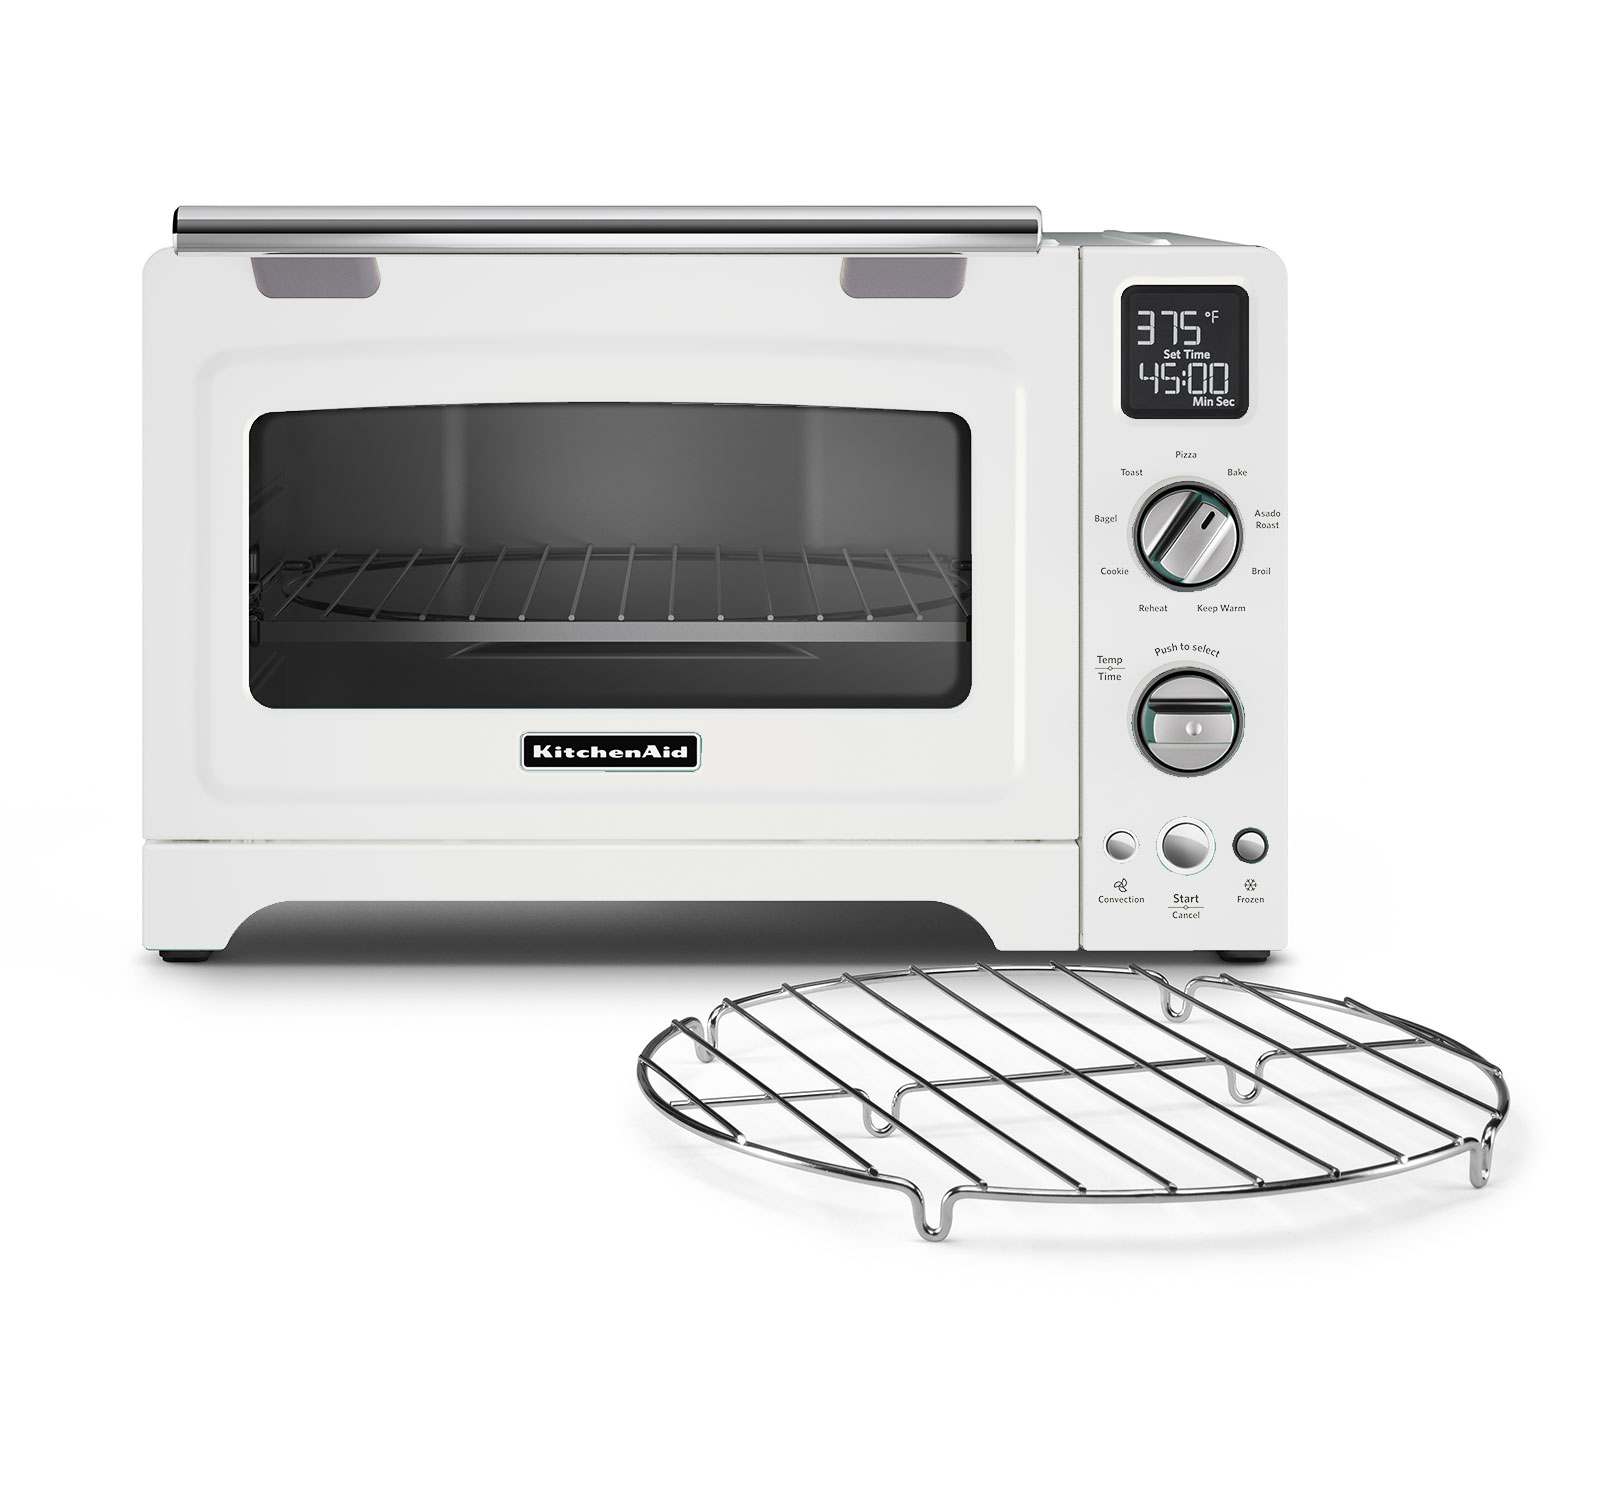 Kitchenaid Countertop Convection Oven Dimensions : Model KCO275 12